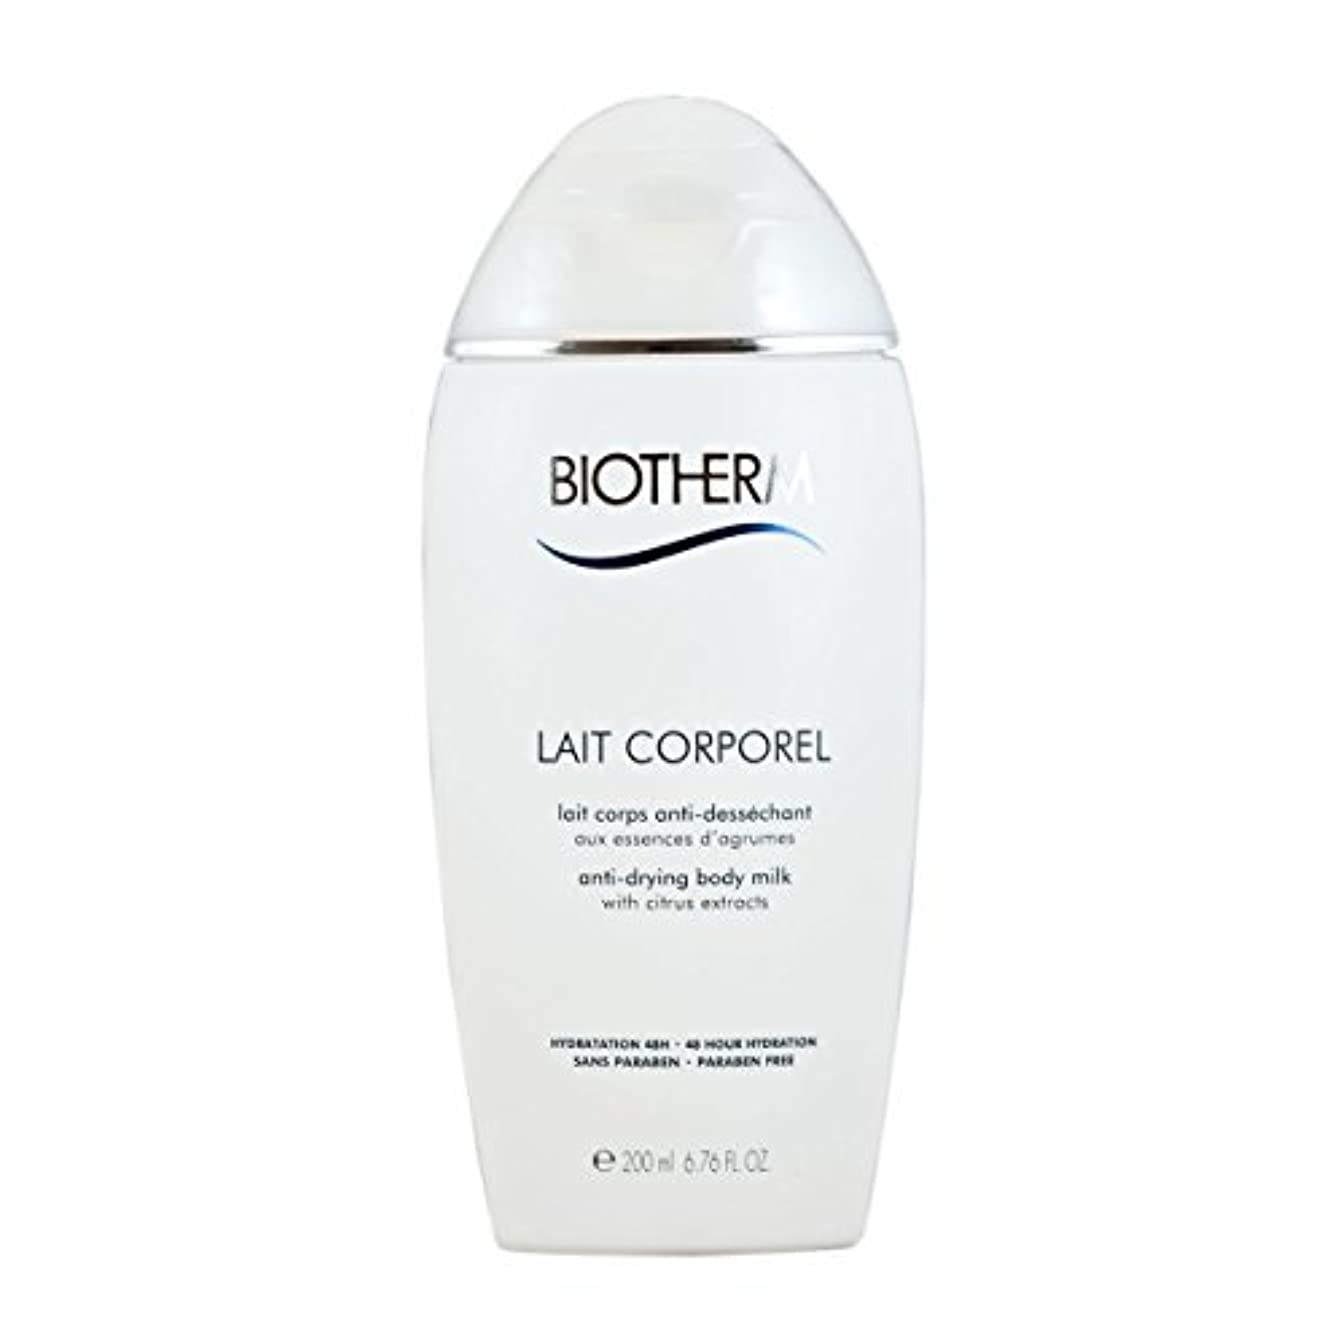 論理的に見せます計器Biotherm Lait Corporel Anti-Drying Body Milk 6.76 Ounce [並行輸入品]